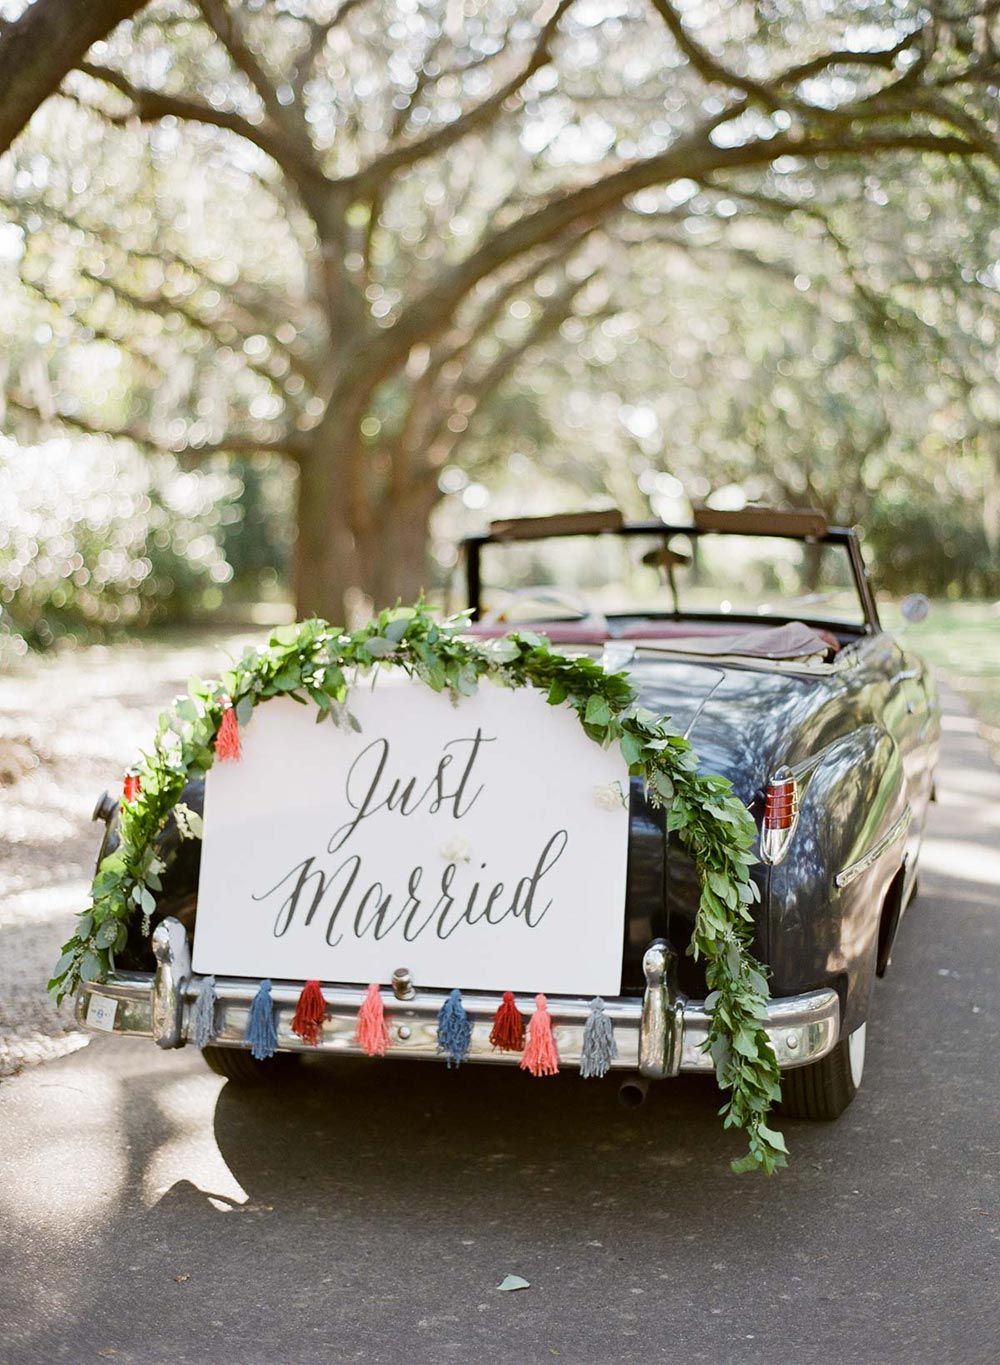 wedding getaway car with just married sign and tassel garland